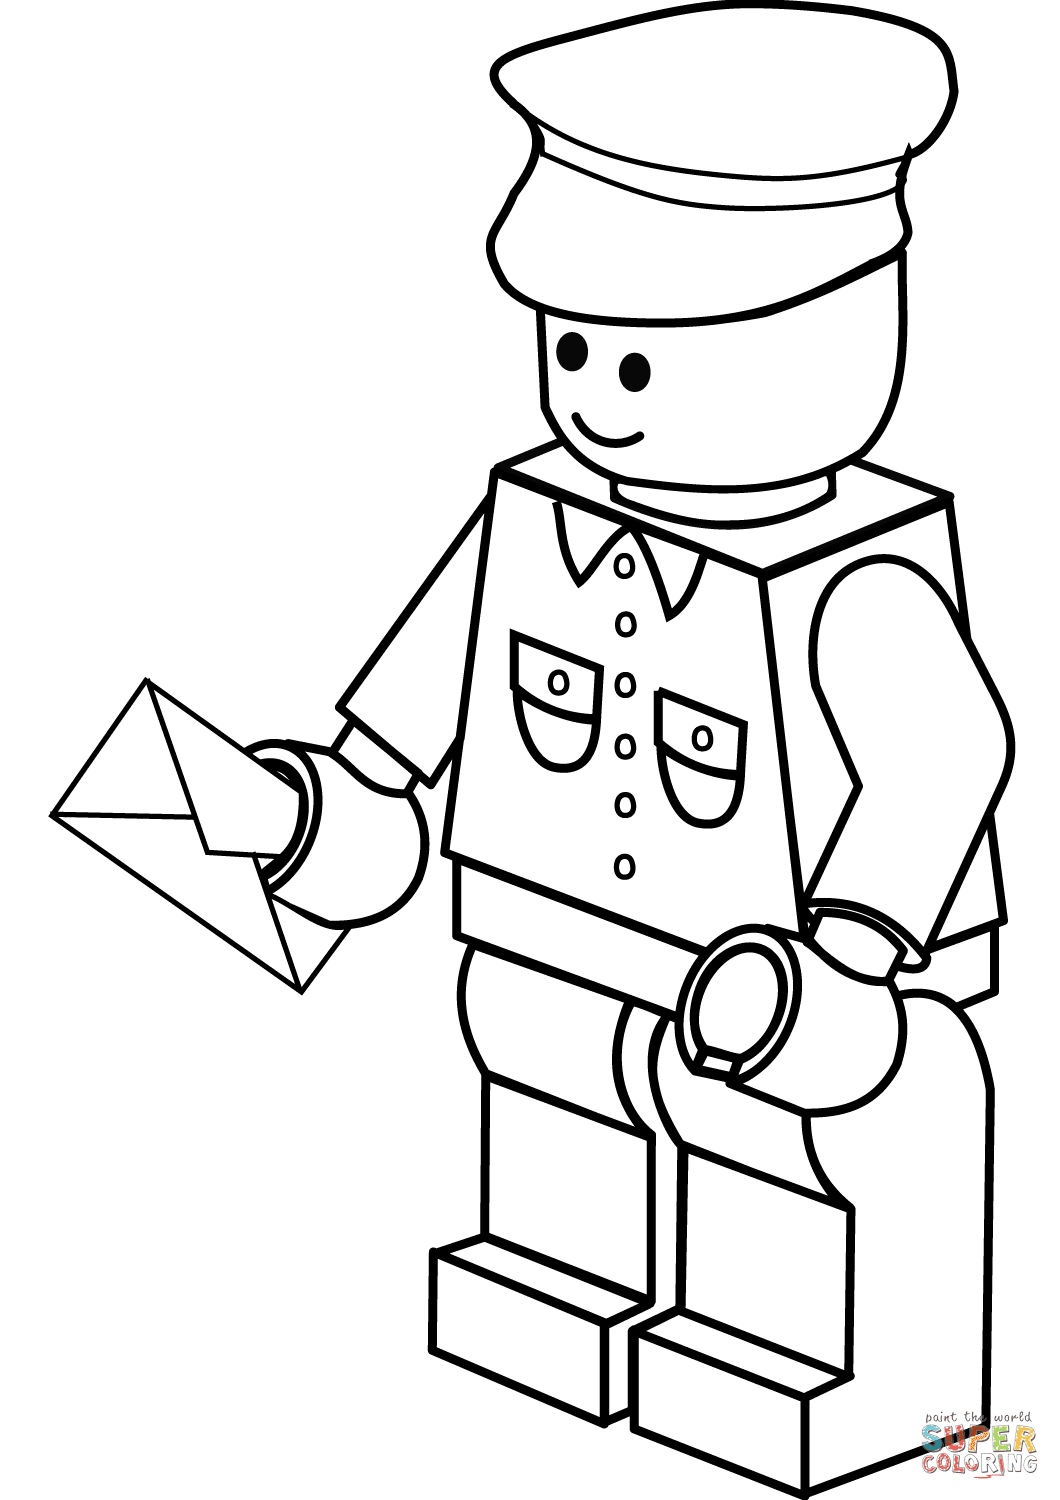 Lego Postman coloring page | Free Printable Coloring Pages